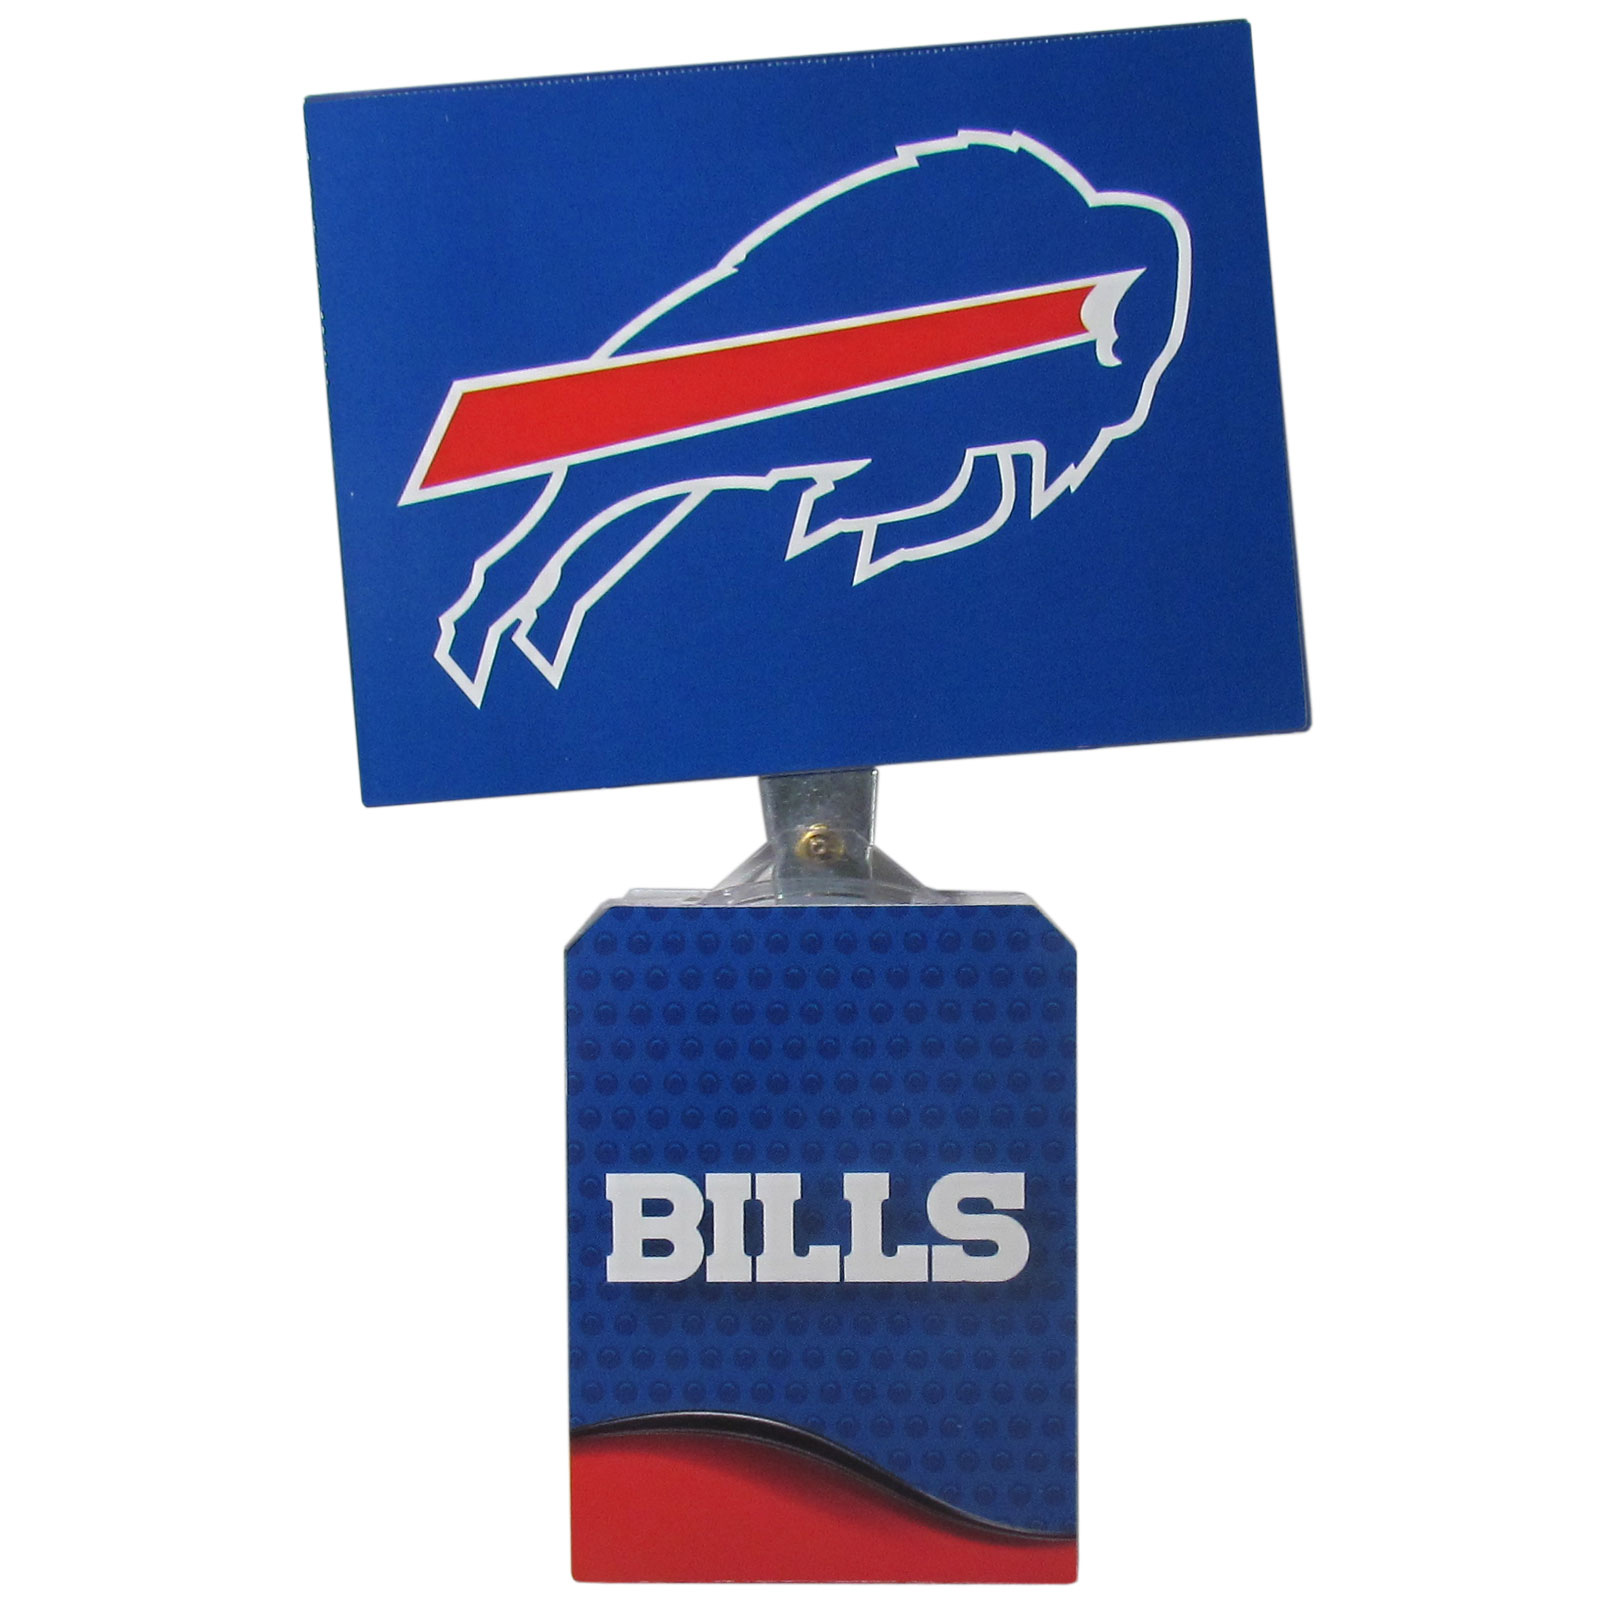 Buffalo Bills Solar Flags - Get pumped up on the way to game with Siskiyou's Chicago Bears Buffalo Bills Solar Flag that mounts to your dashboard or window. The in-motion solar flag also doubles as decoration for your tailgate or homegate! The base of the flag is 3 inches tall and the flag is 4 inches making the entire in-motion solar flag stand at 7 inches tall. Keep your spirit moving with your favorite team's Solar Flag.